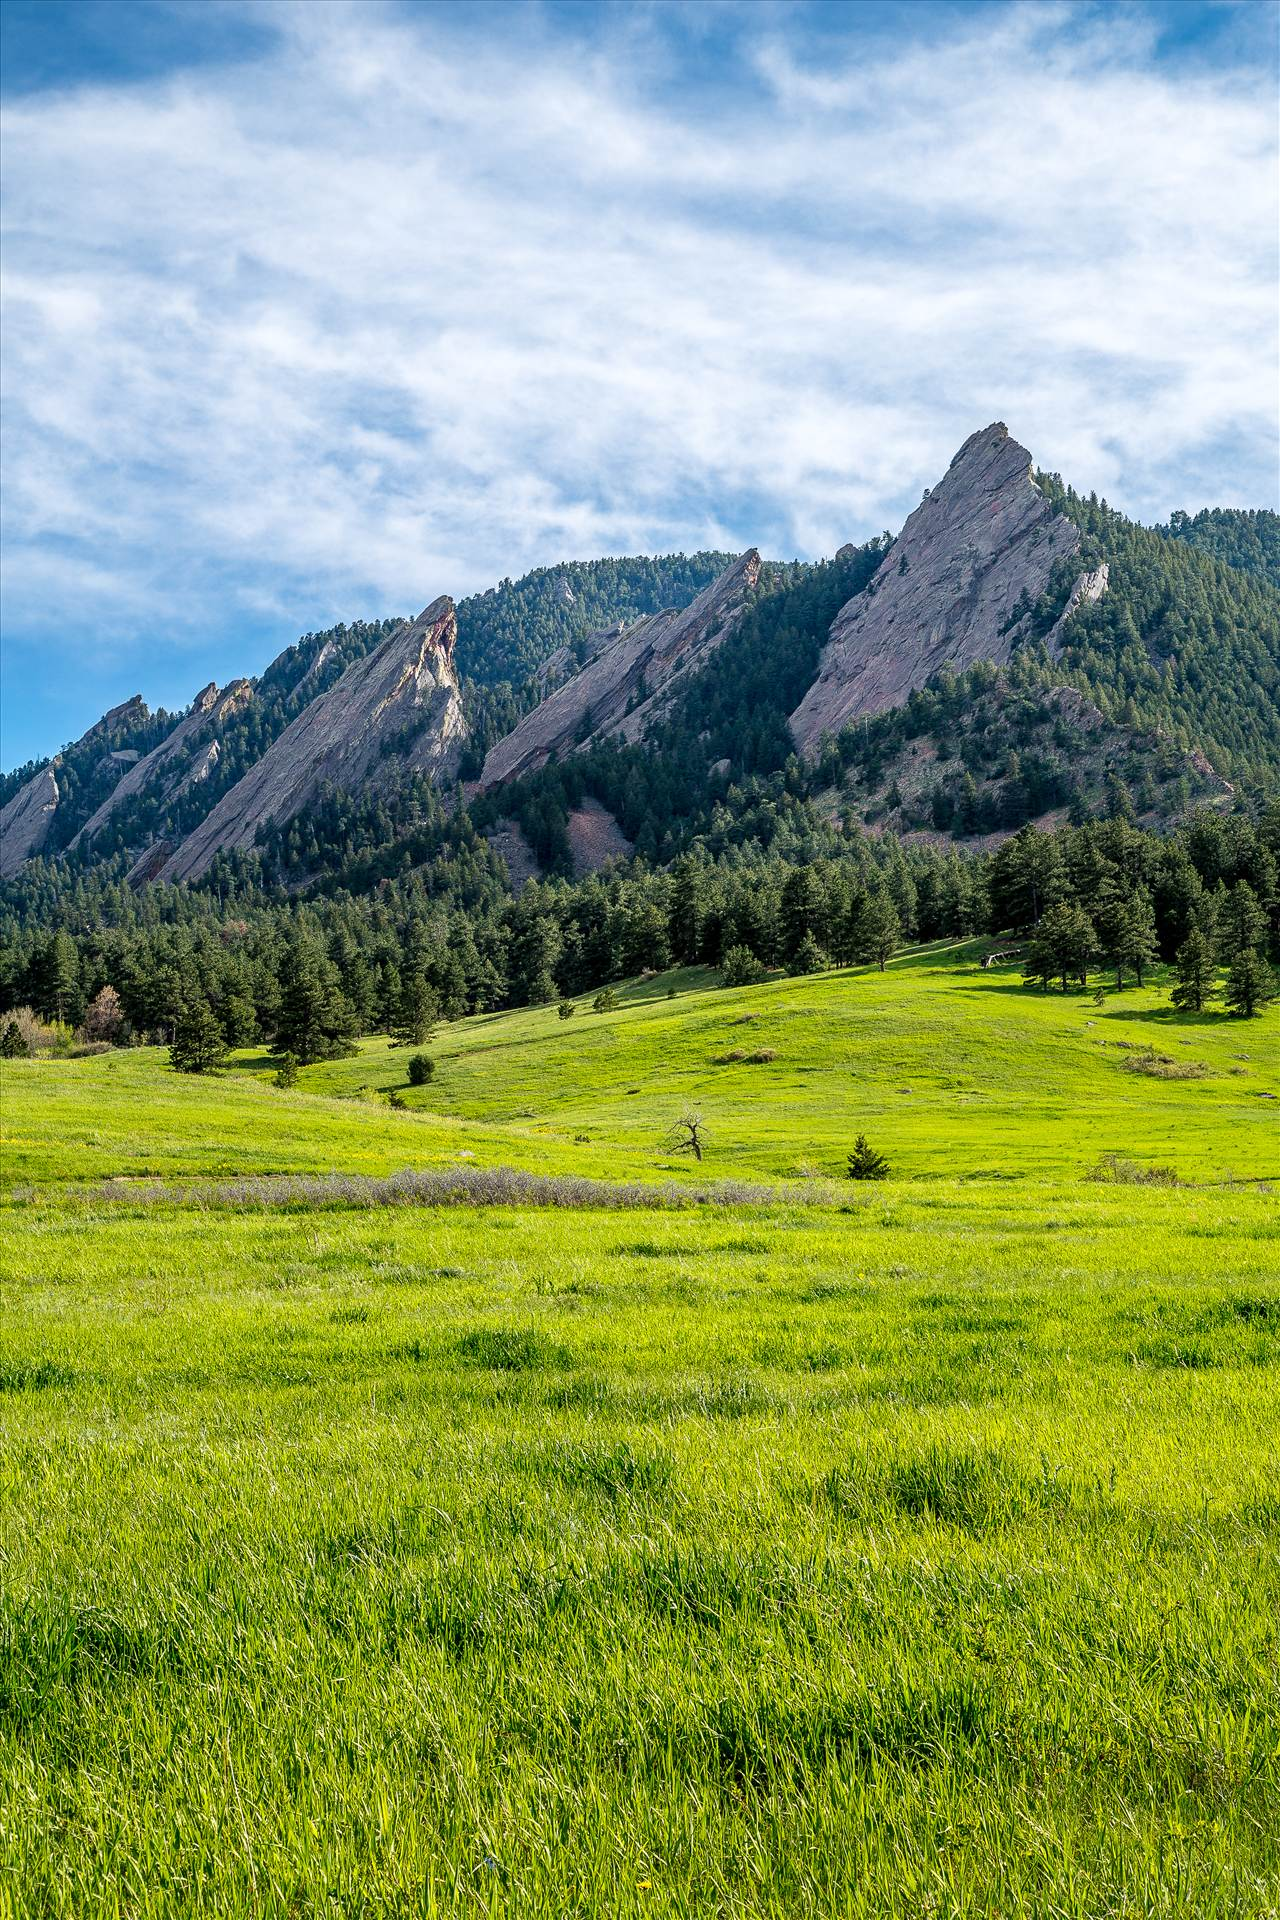 Flatirons - The Flatirons, taken near the National Atmospheric Research Laboratory in Boulder, CO. by D Scott Smith